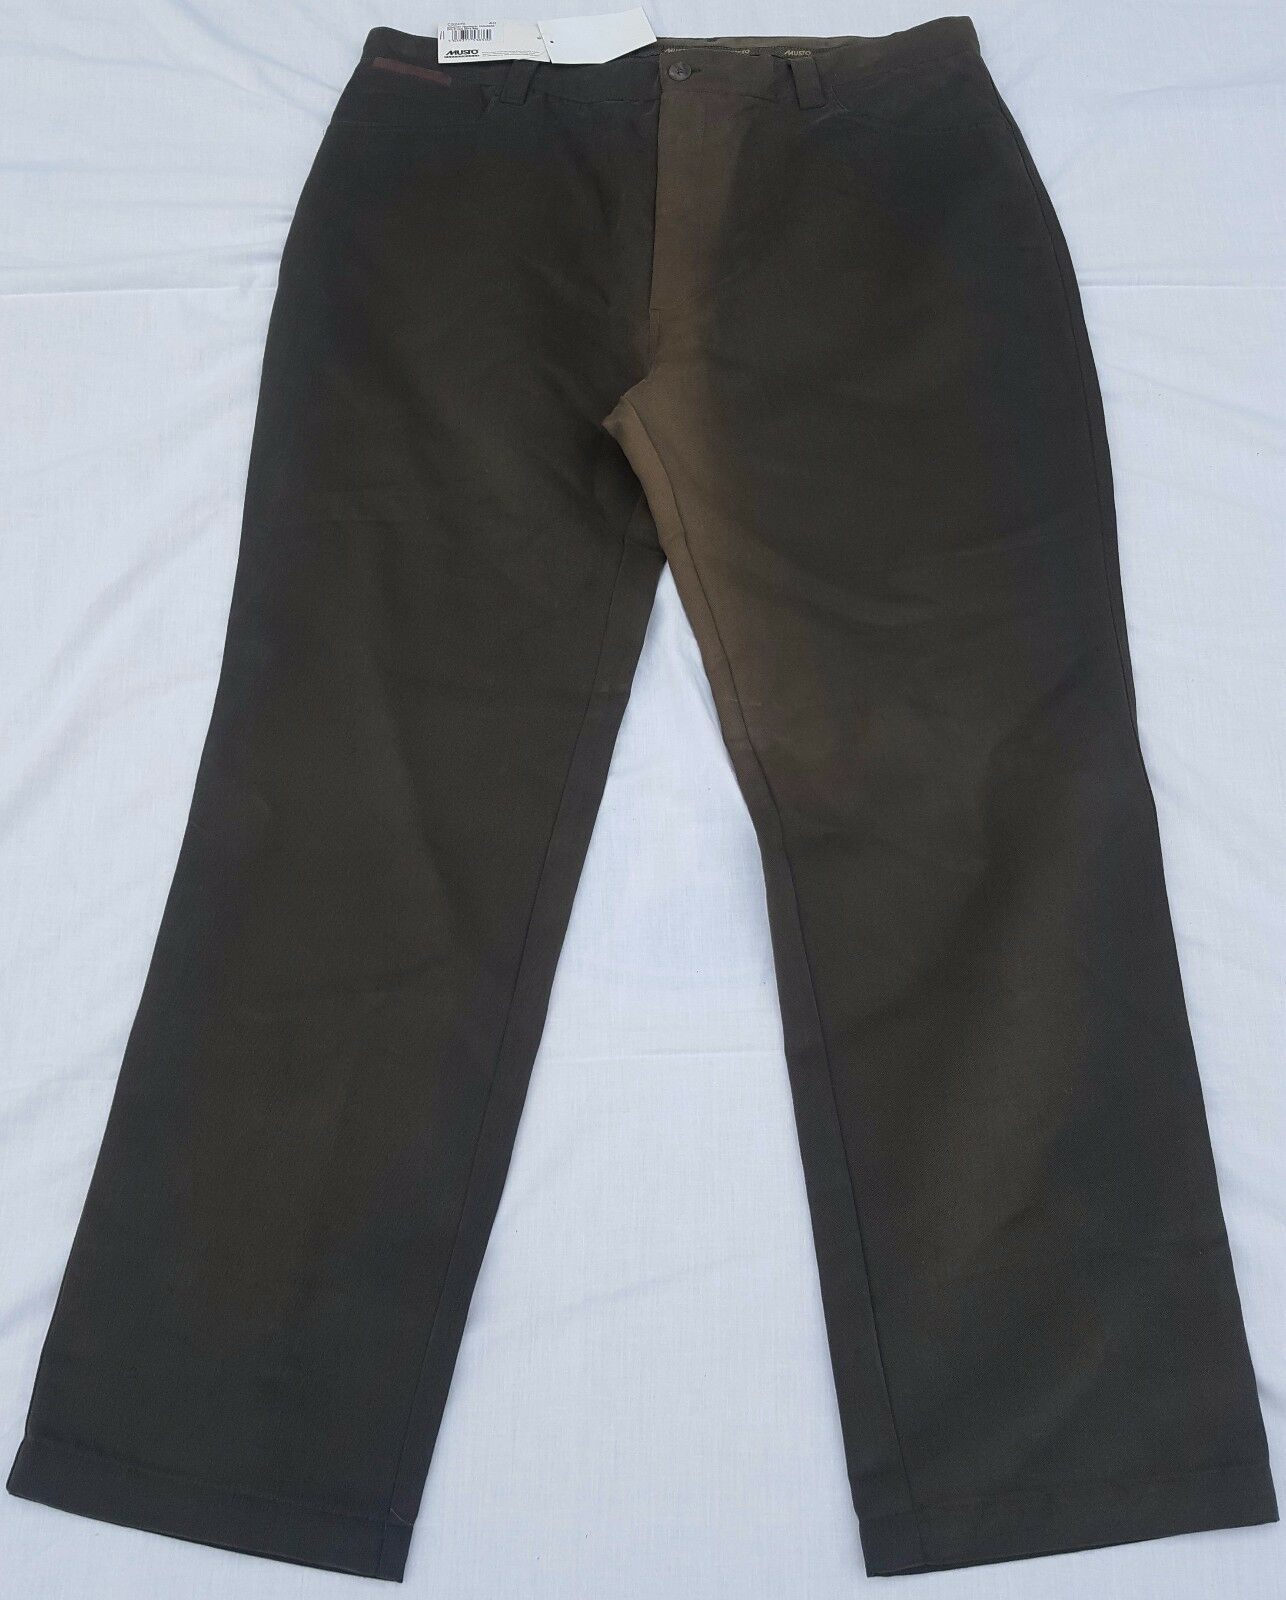 SHOP SOILED Musto Mens Country Technical Trousers Dark Olive Size 40 Regular